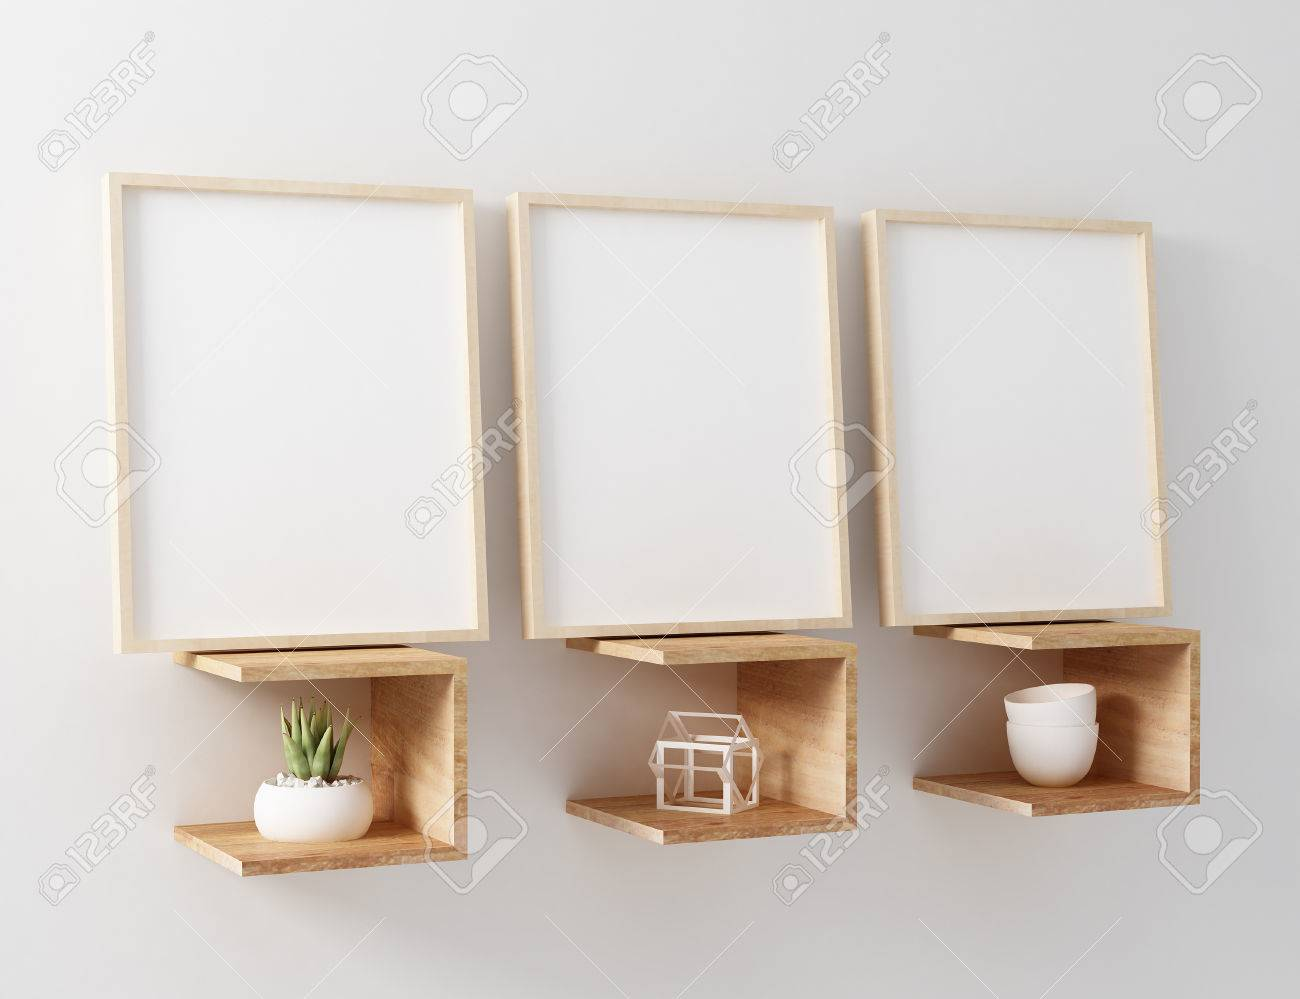 3 blank frame mockup stock photo picture and royalty free image